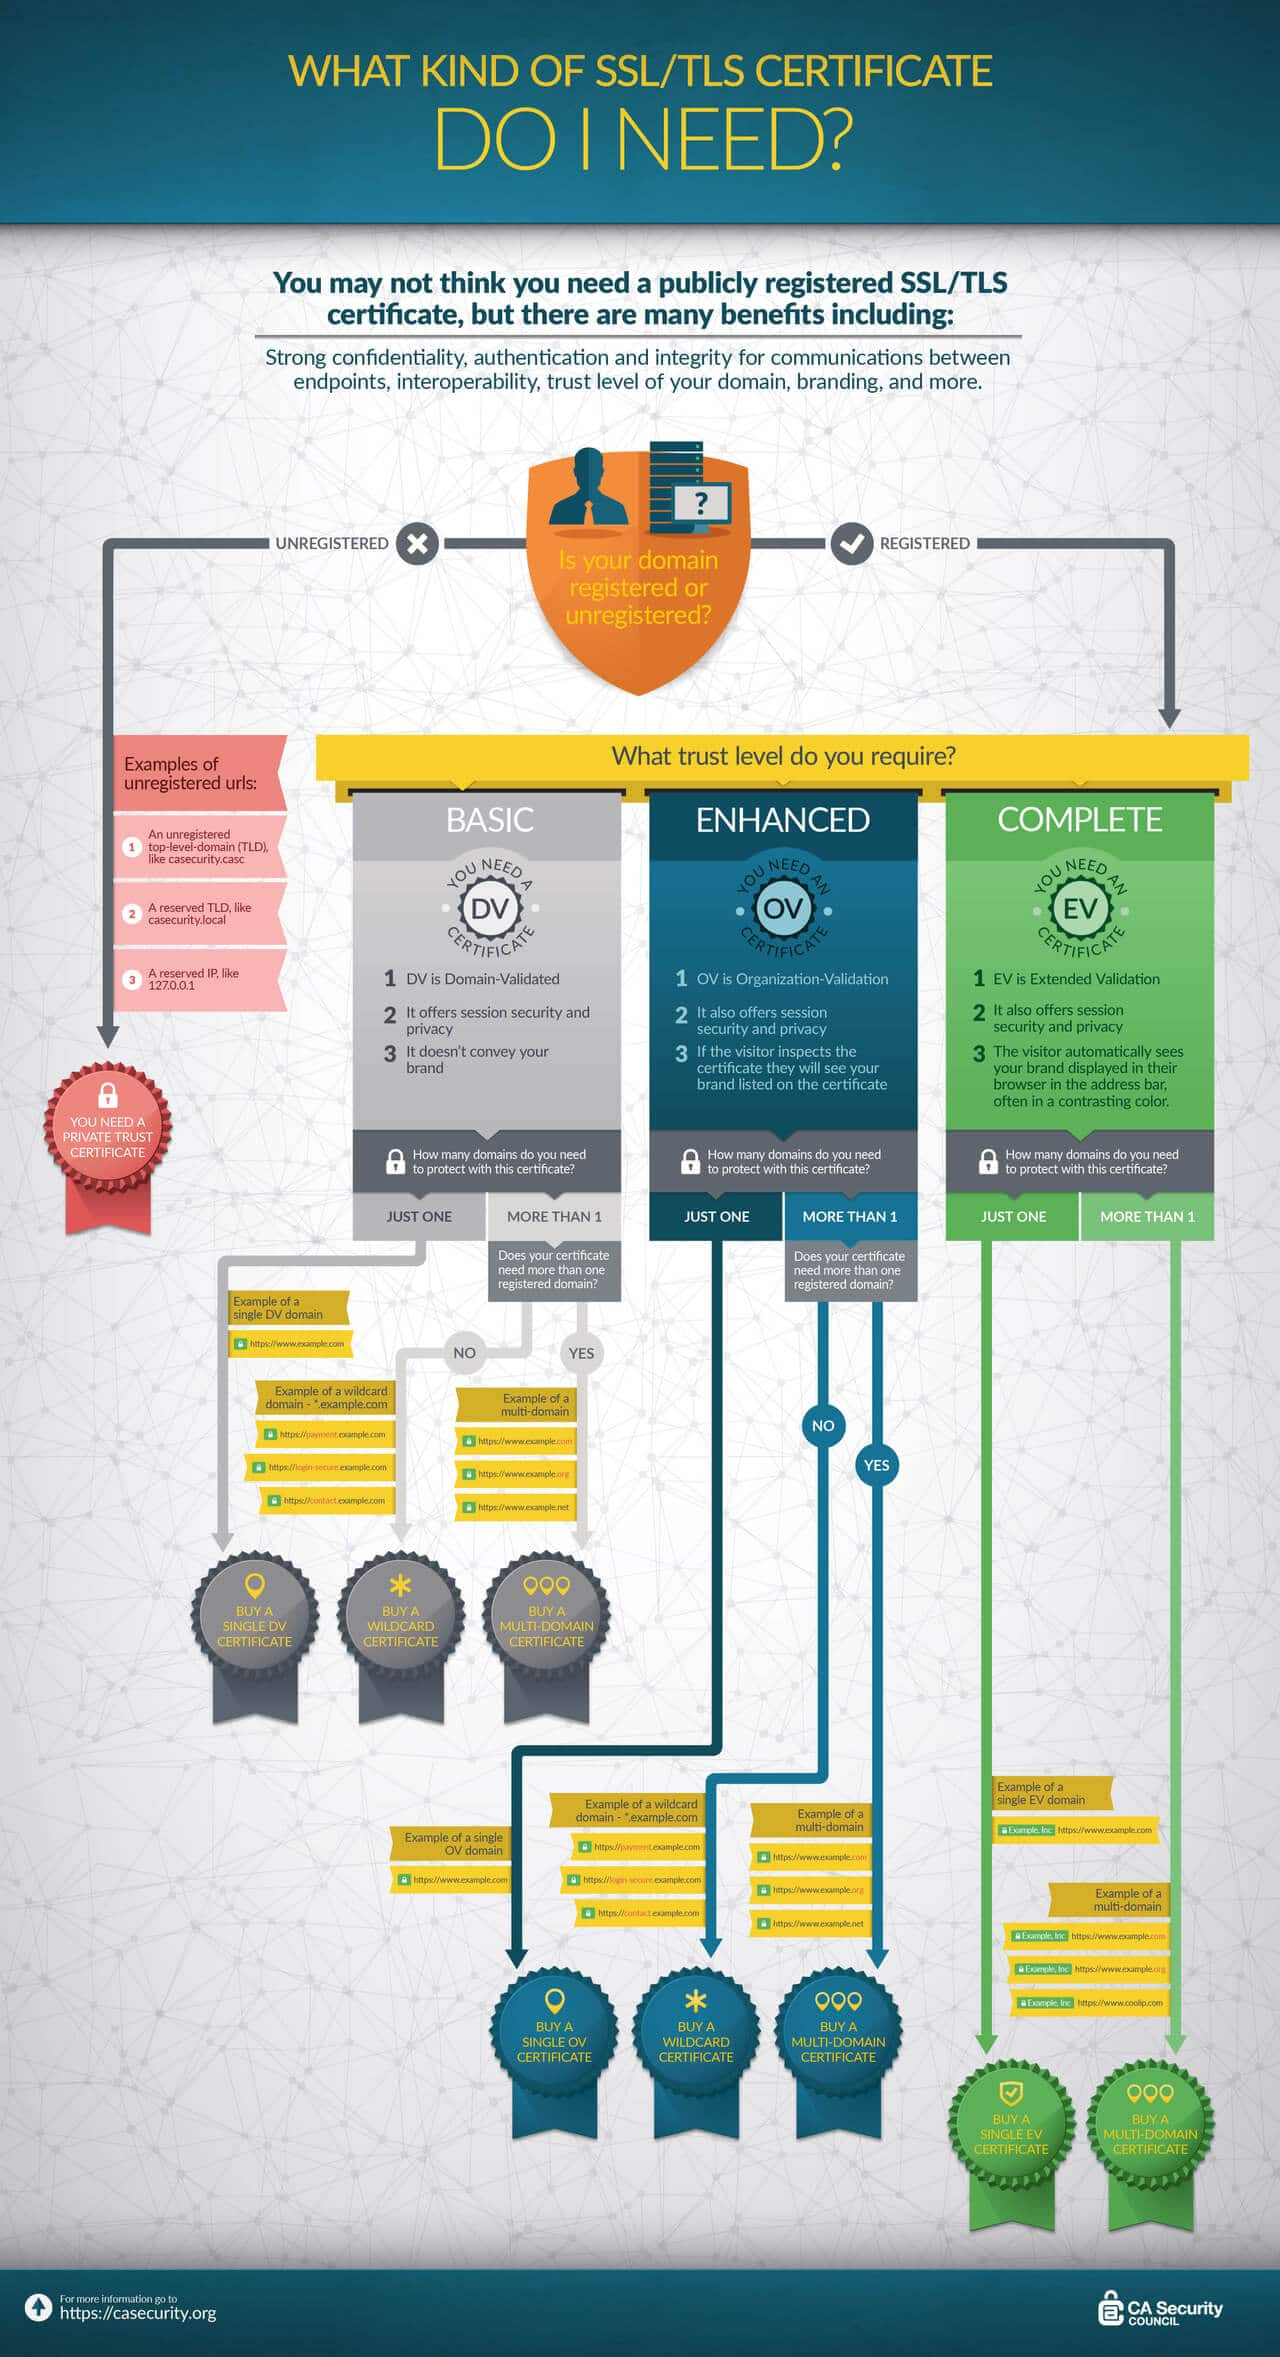 CA Security Council Infographic - What kind of SSL Certificate Do I Need?